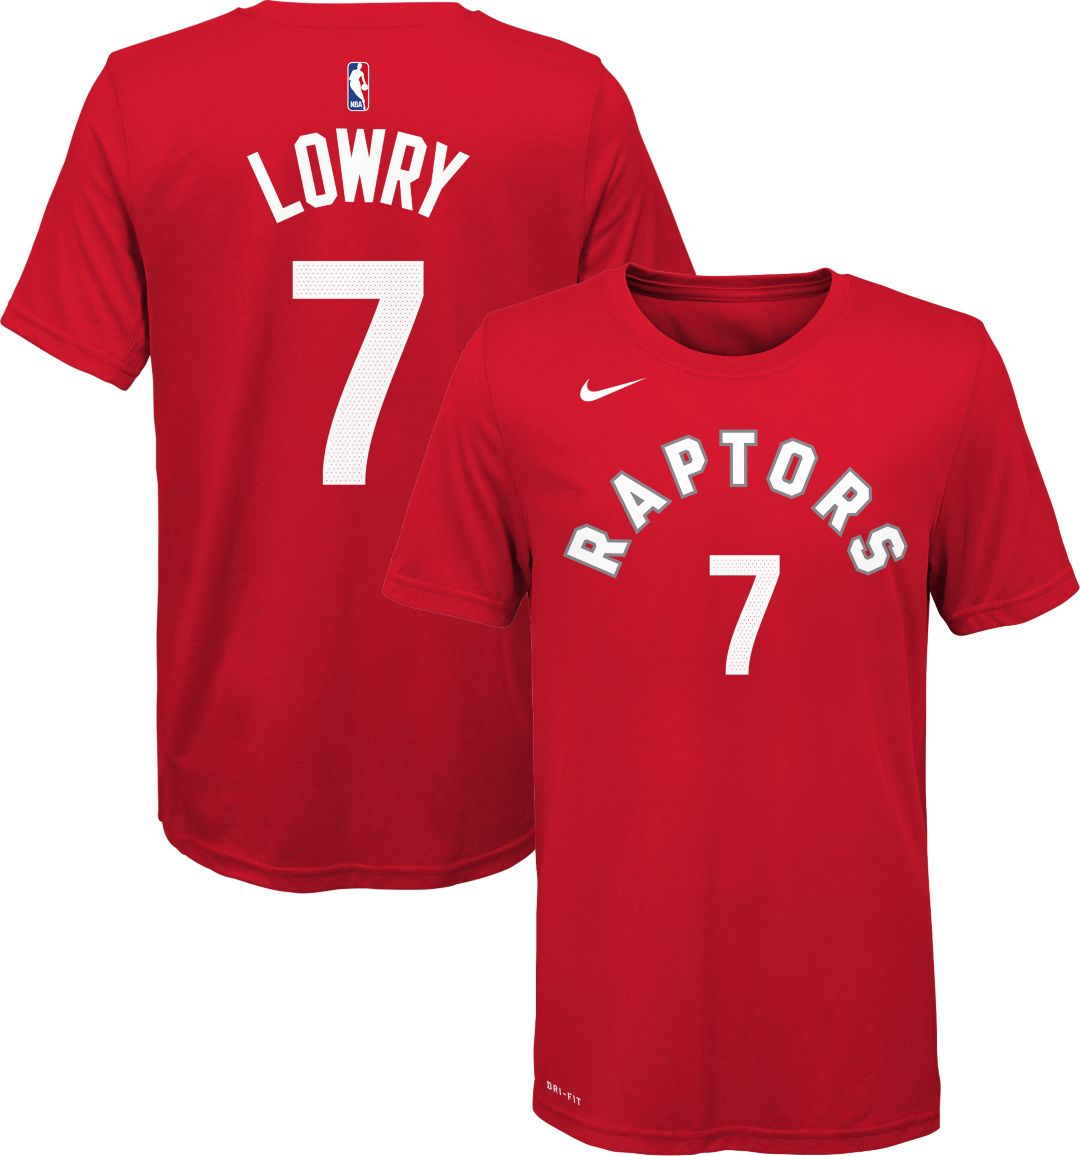 7f353379ca759 Nike Youth Toronto Raptors Kyle Lowry #7 Dri-FIT Red T-Shirt ...